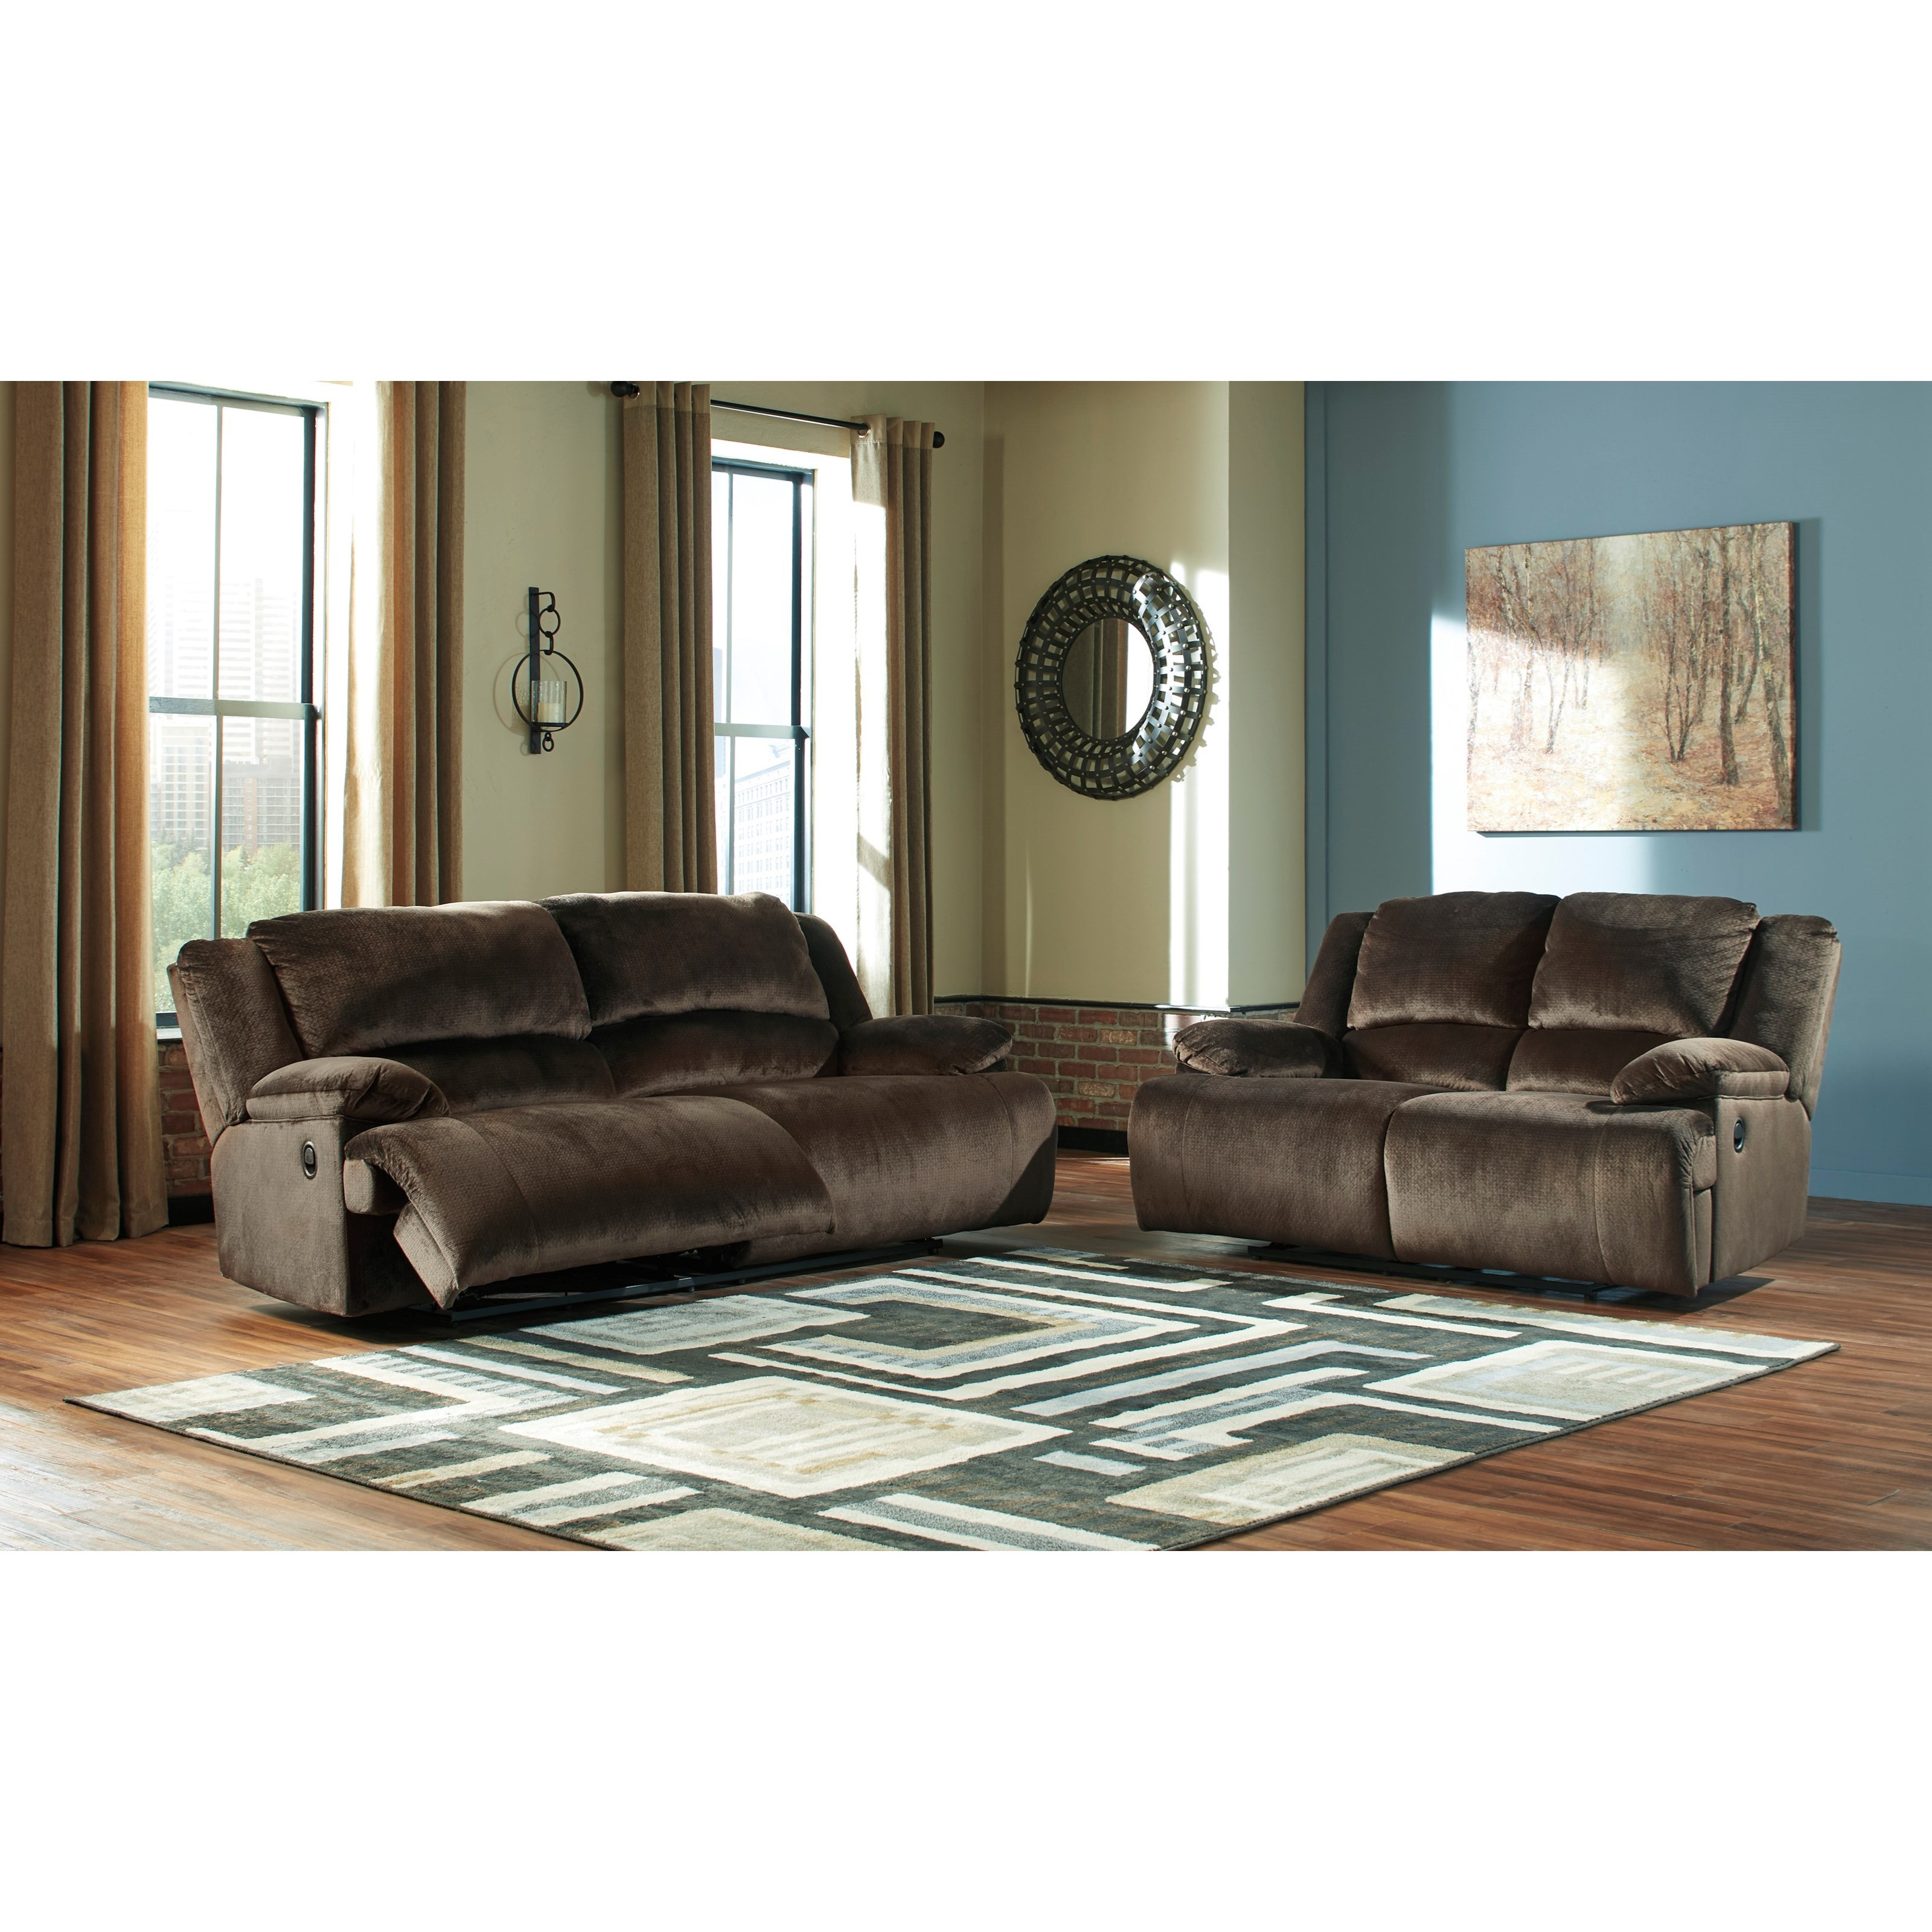 Clonmel Reclining Living Room Group by Ashley (Signature Design) at Johnny Janosik